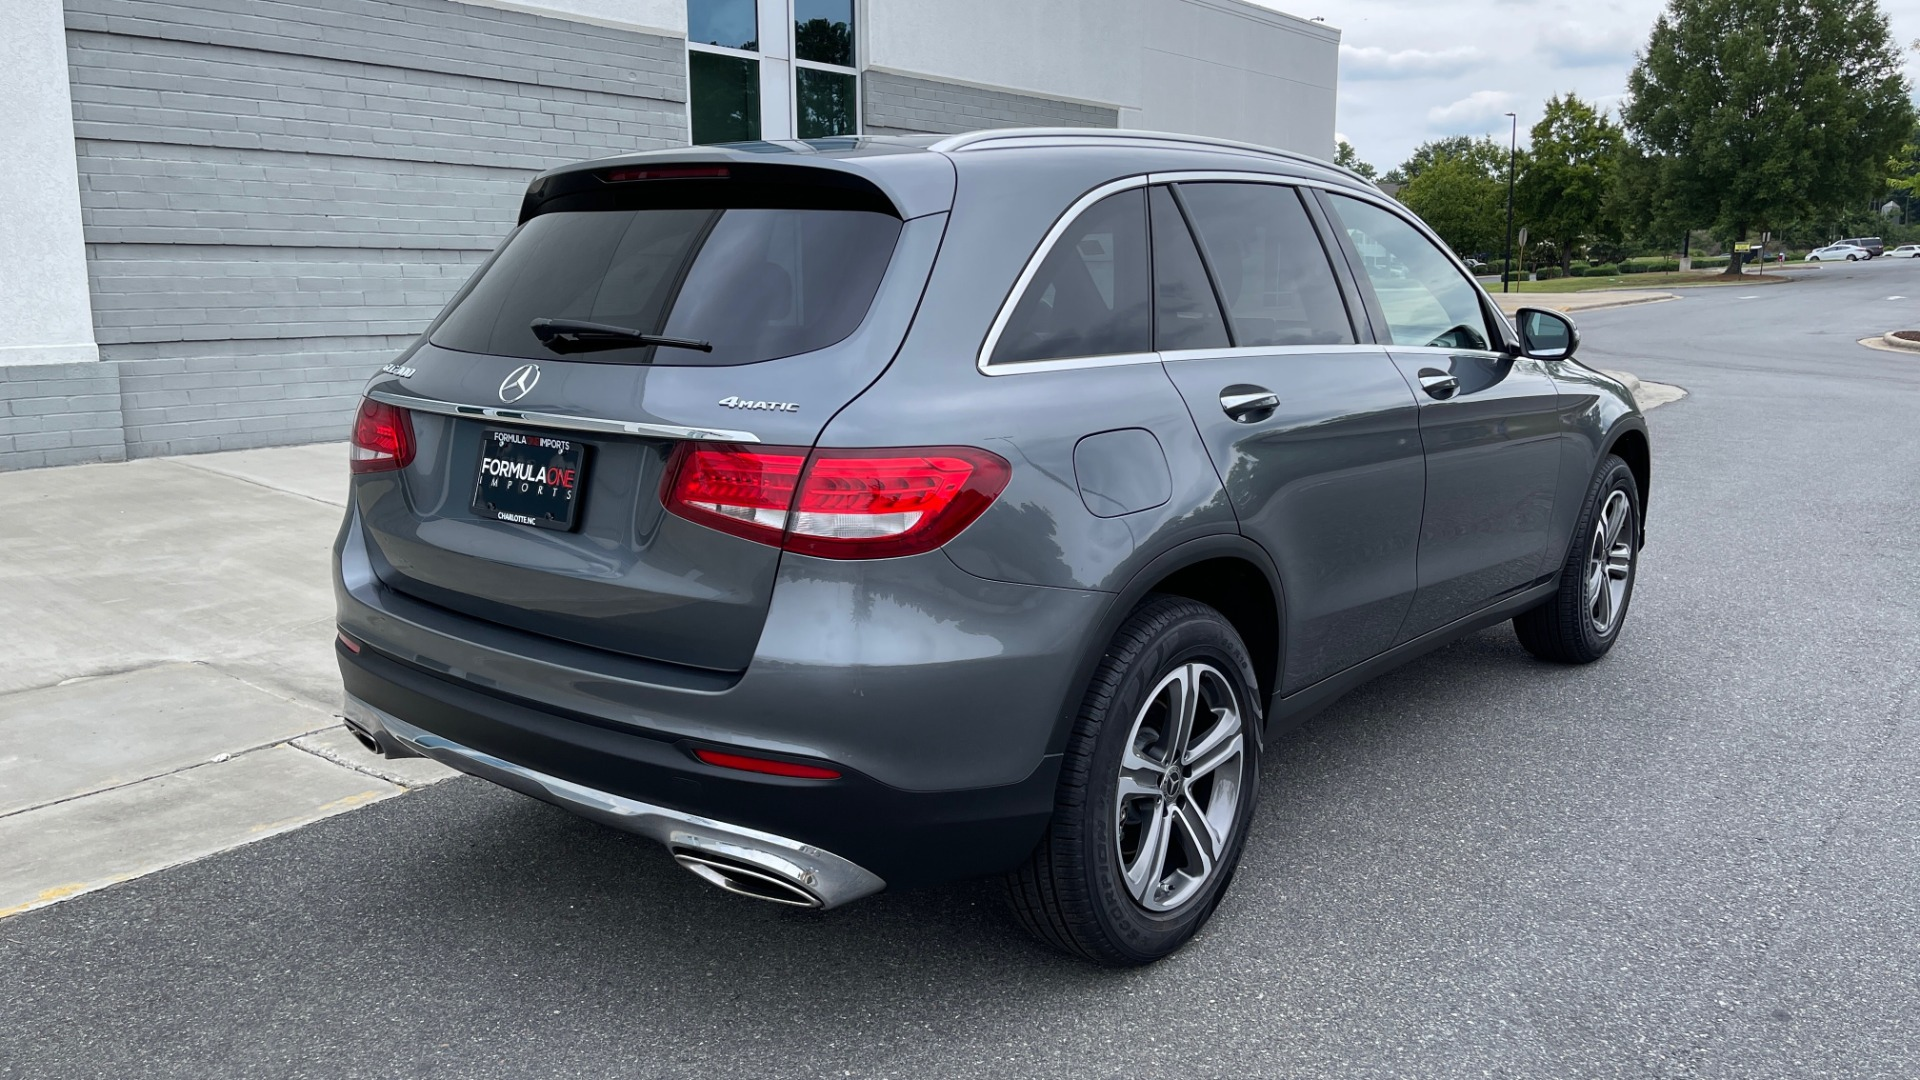 Used 2018 Mercedes-Benz GLC 300 4MATIC PREMIUM / PANO-ROOF / HTD STS / APPLE / REARVIEW for sale $34,295 at Formula Imports in Charlotte NC 28227 2